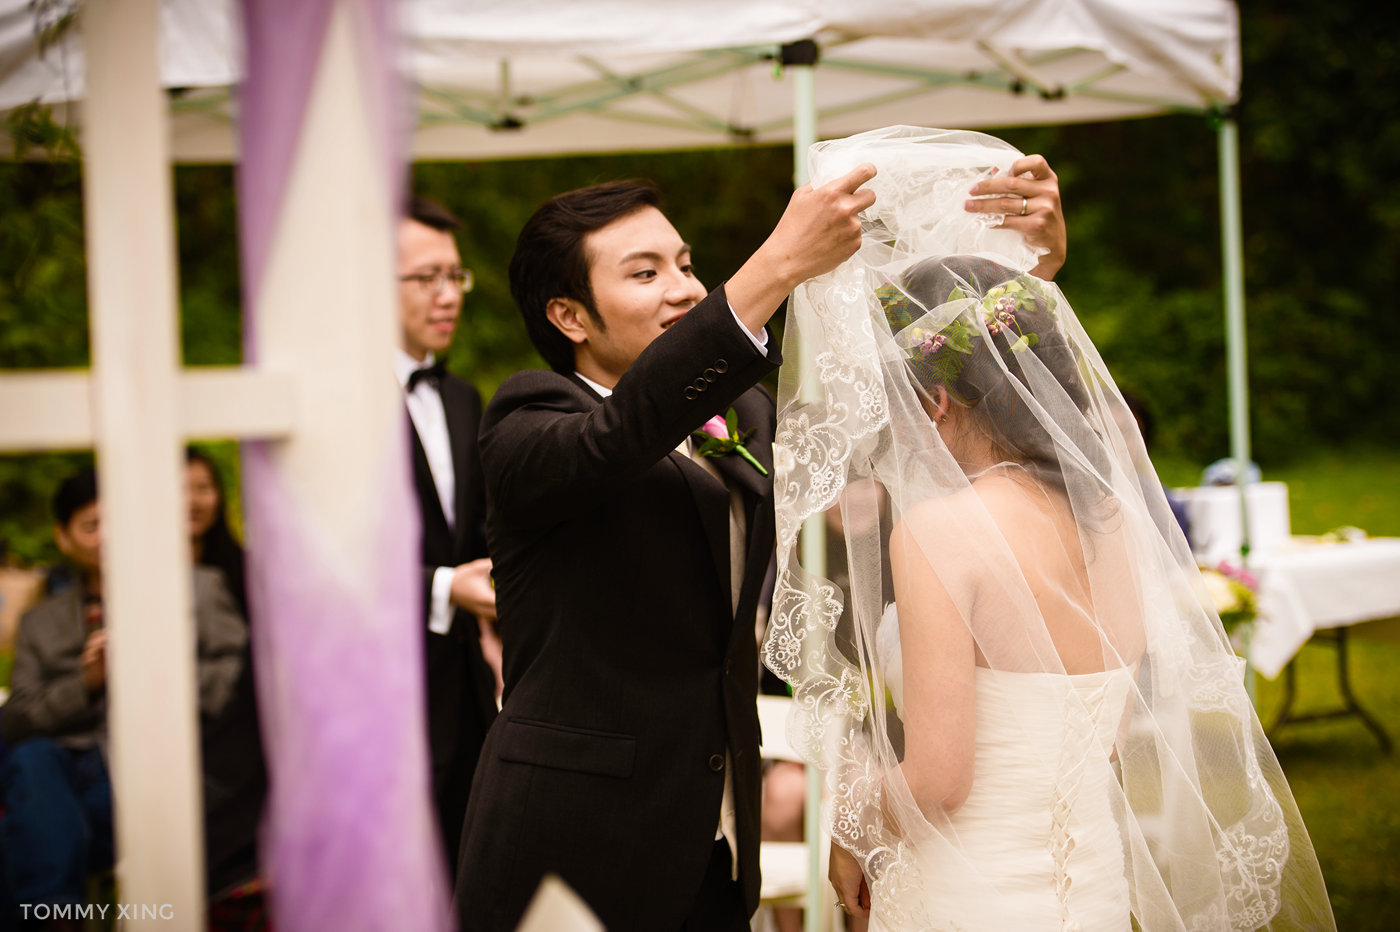 Seattle Wedding and pre wedding Los Angeles Tommy Xing Photography 西雅图洛杉矶旧金山婚礼婚纱照摄影师 092.jpg